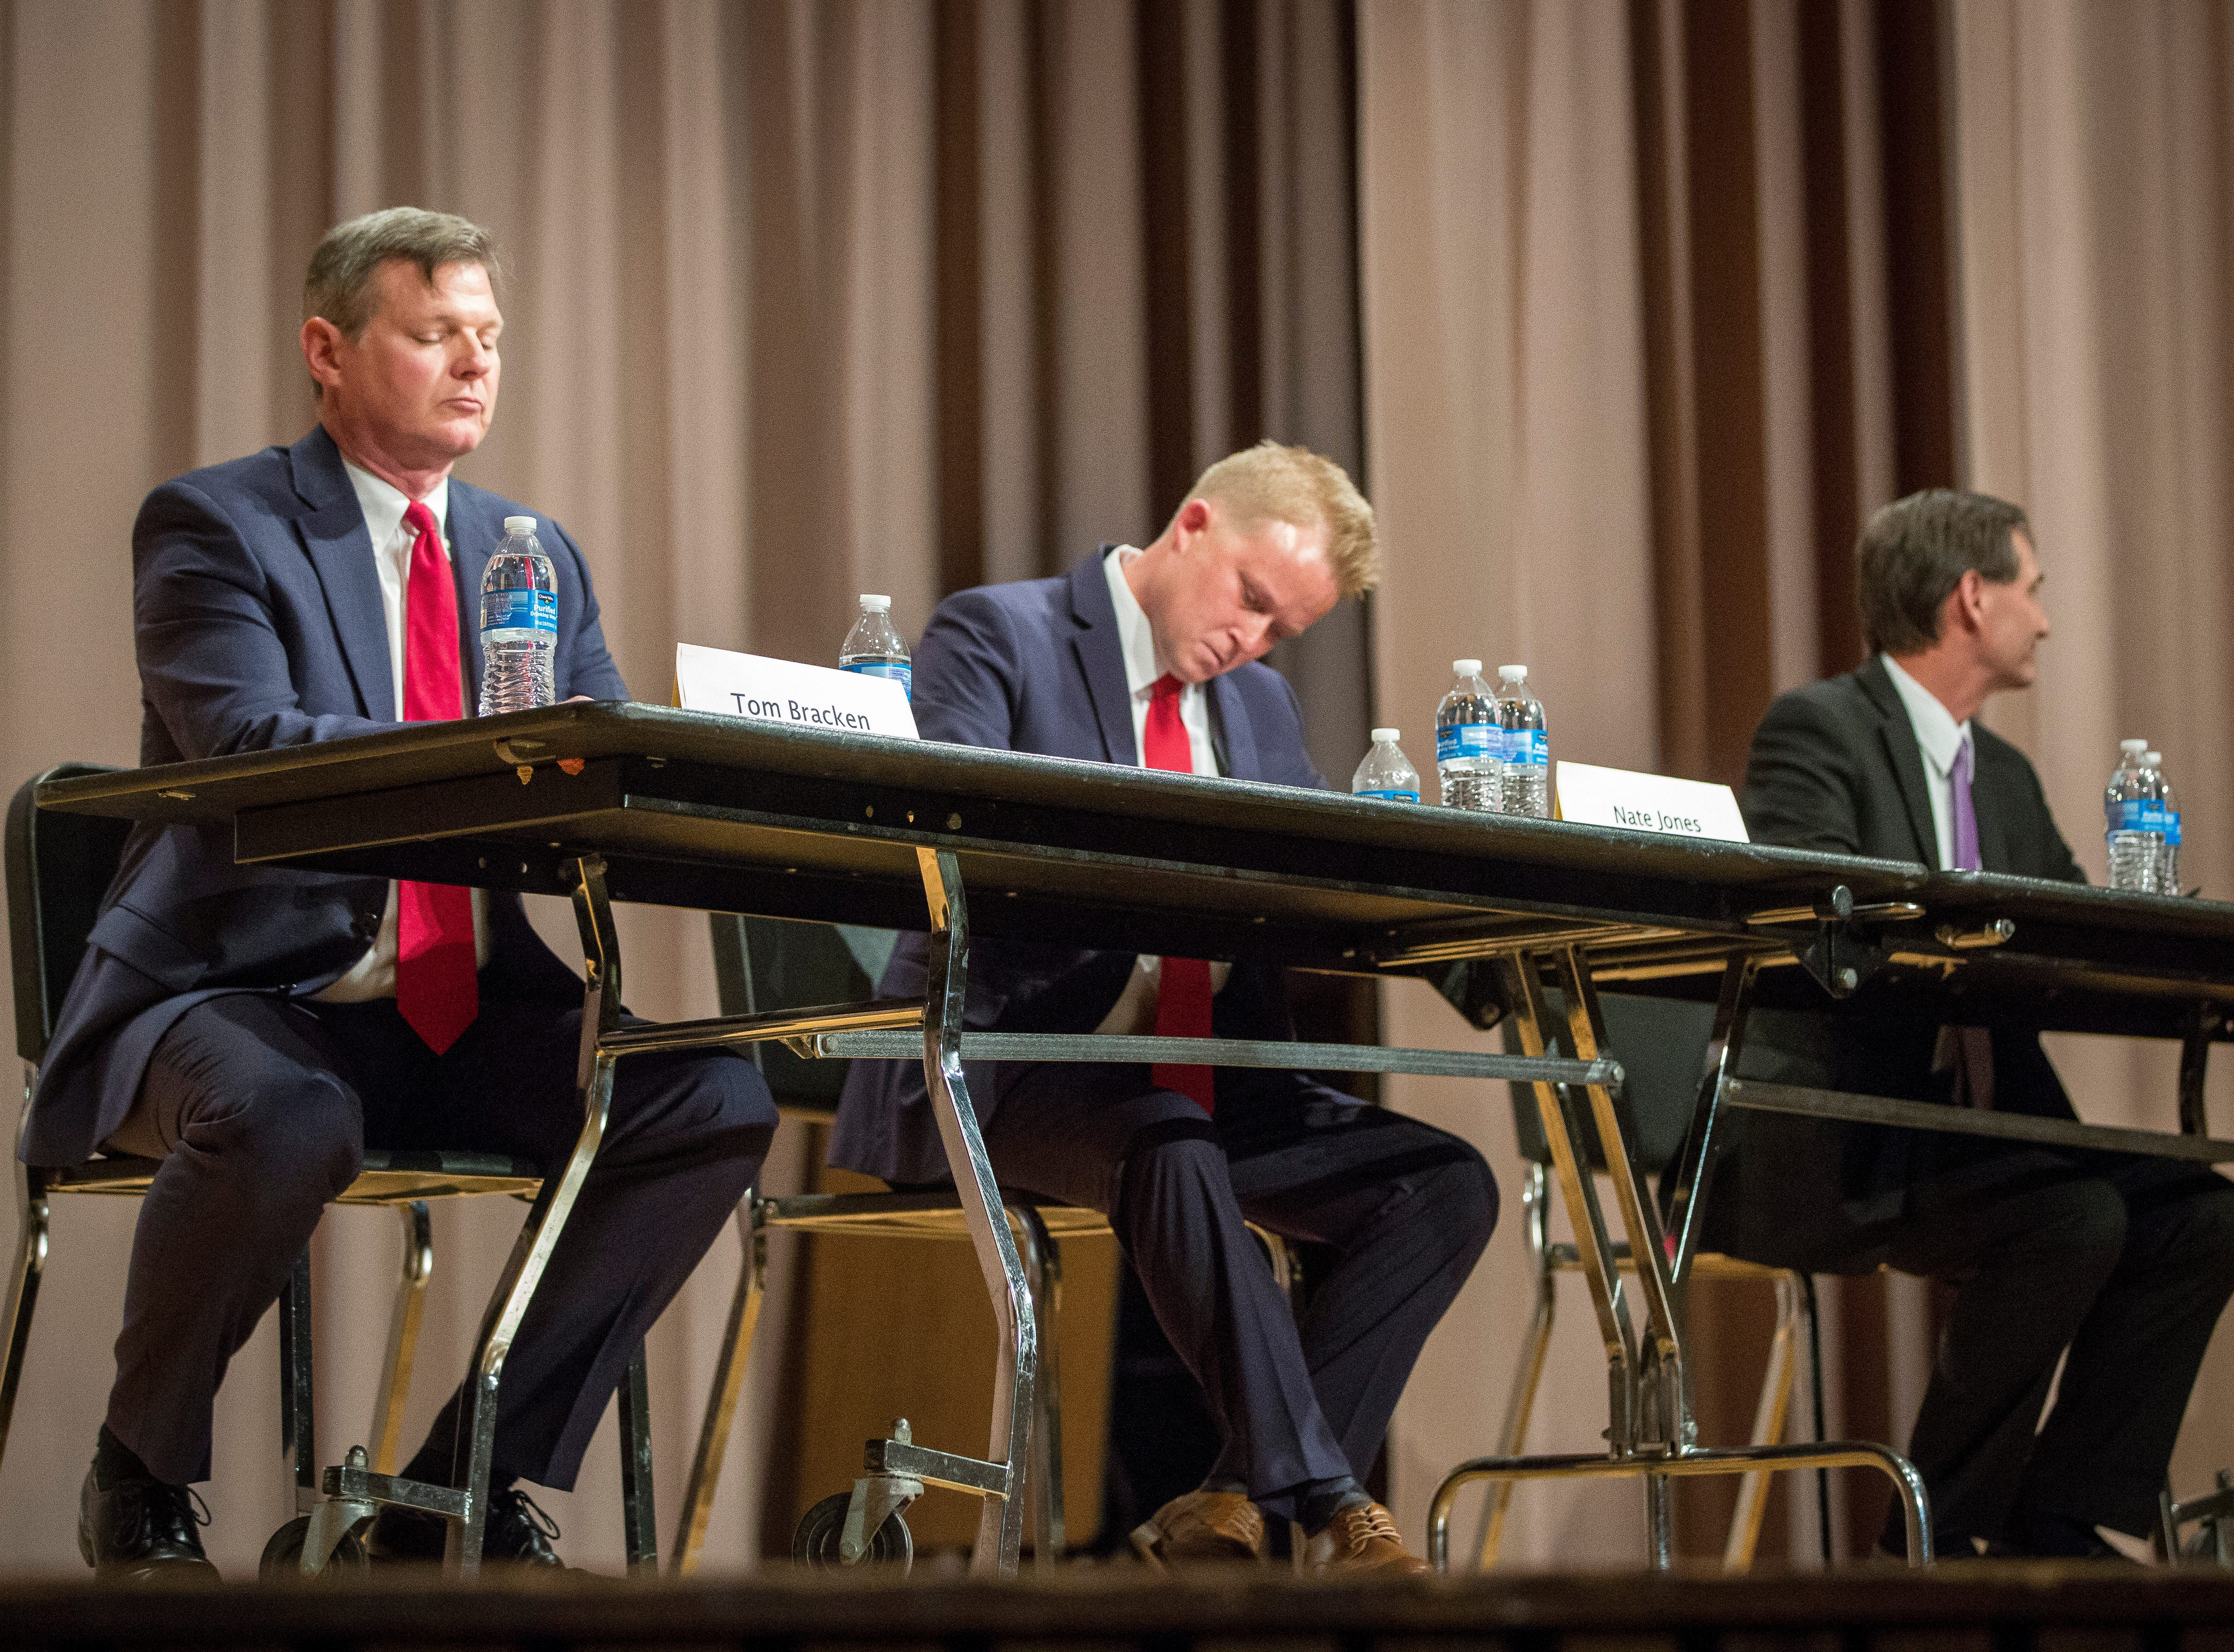 All three candidates prepare their opening statements during the Republican mayoral debate on April 23 at Northside Middle School. The primary is on May 7.